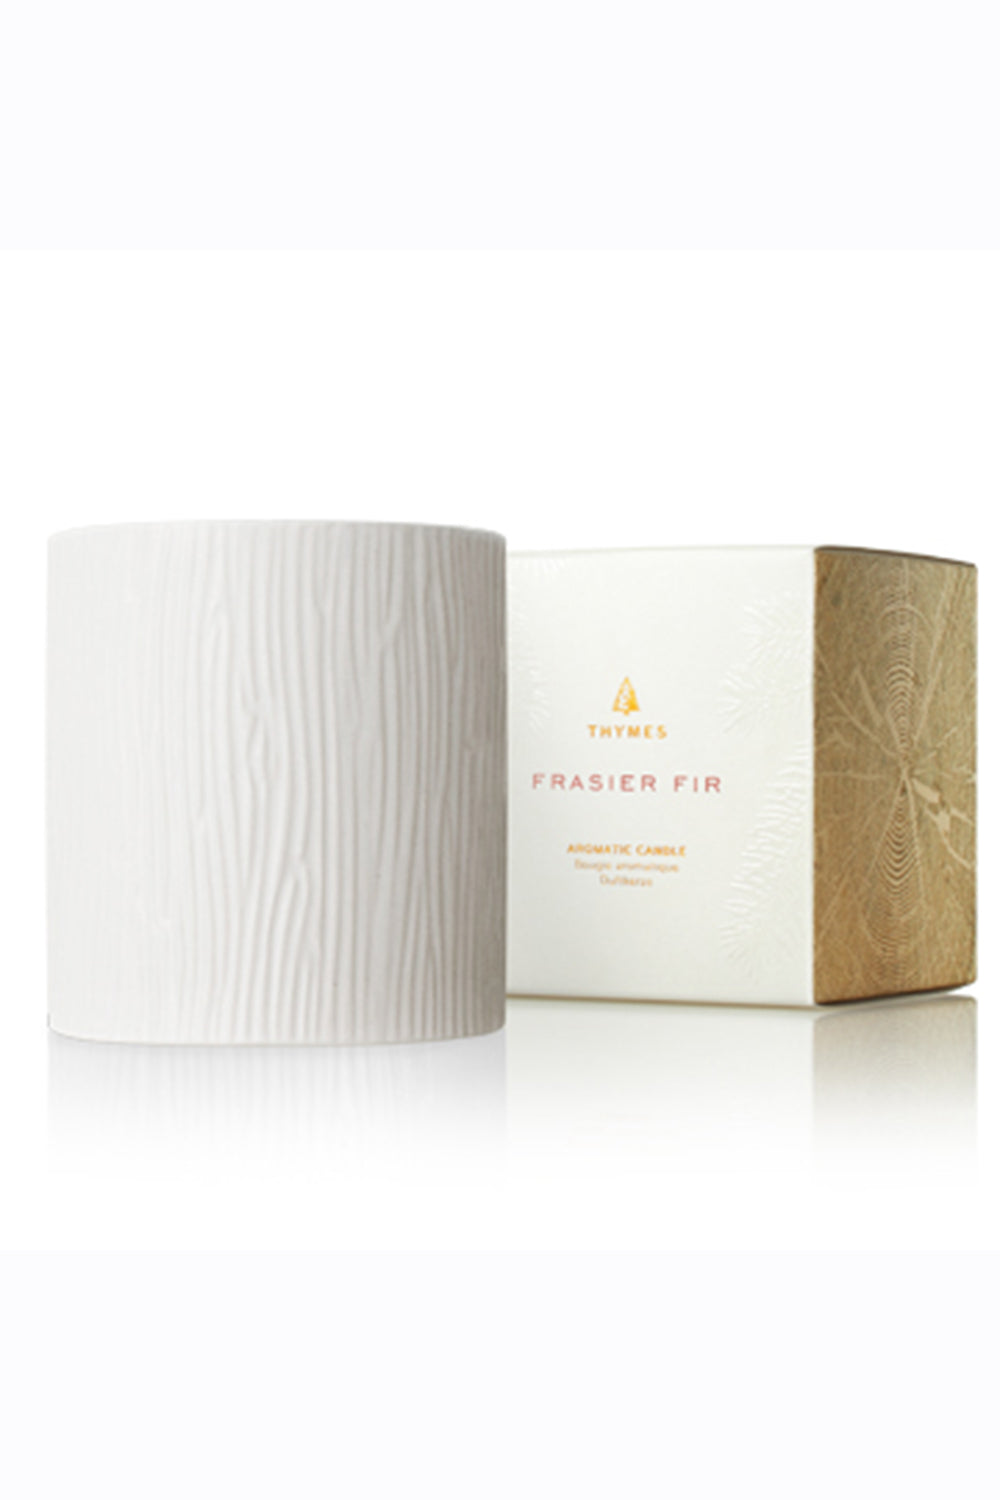 Frasier Fir Candle - Medium Ceramic White